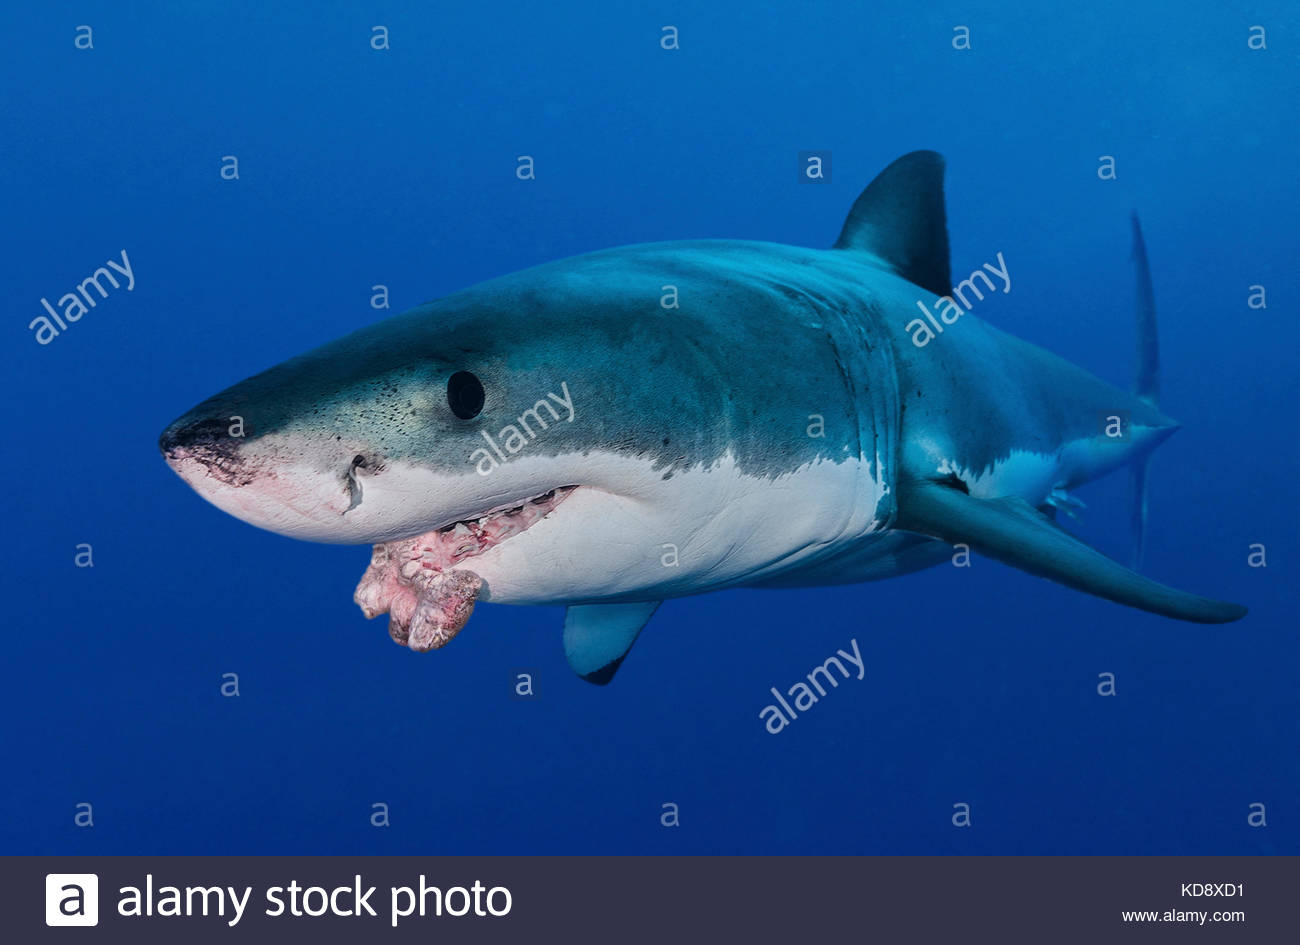 Great white shark, Carcharodon carcharias, with mouth tumour. One of the reasons millions of sharks get killed each - Stock Image